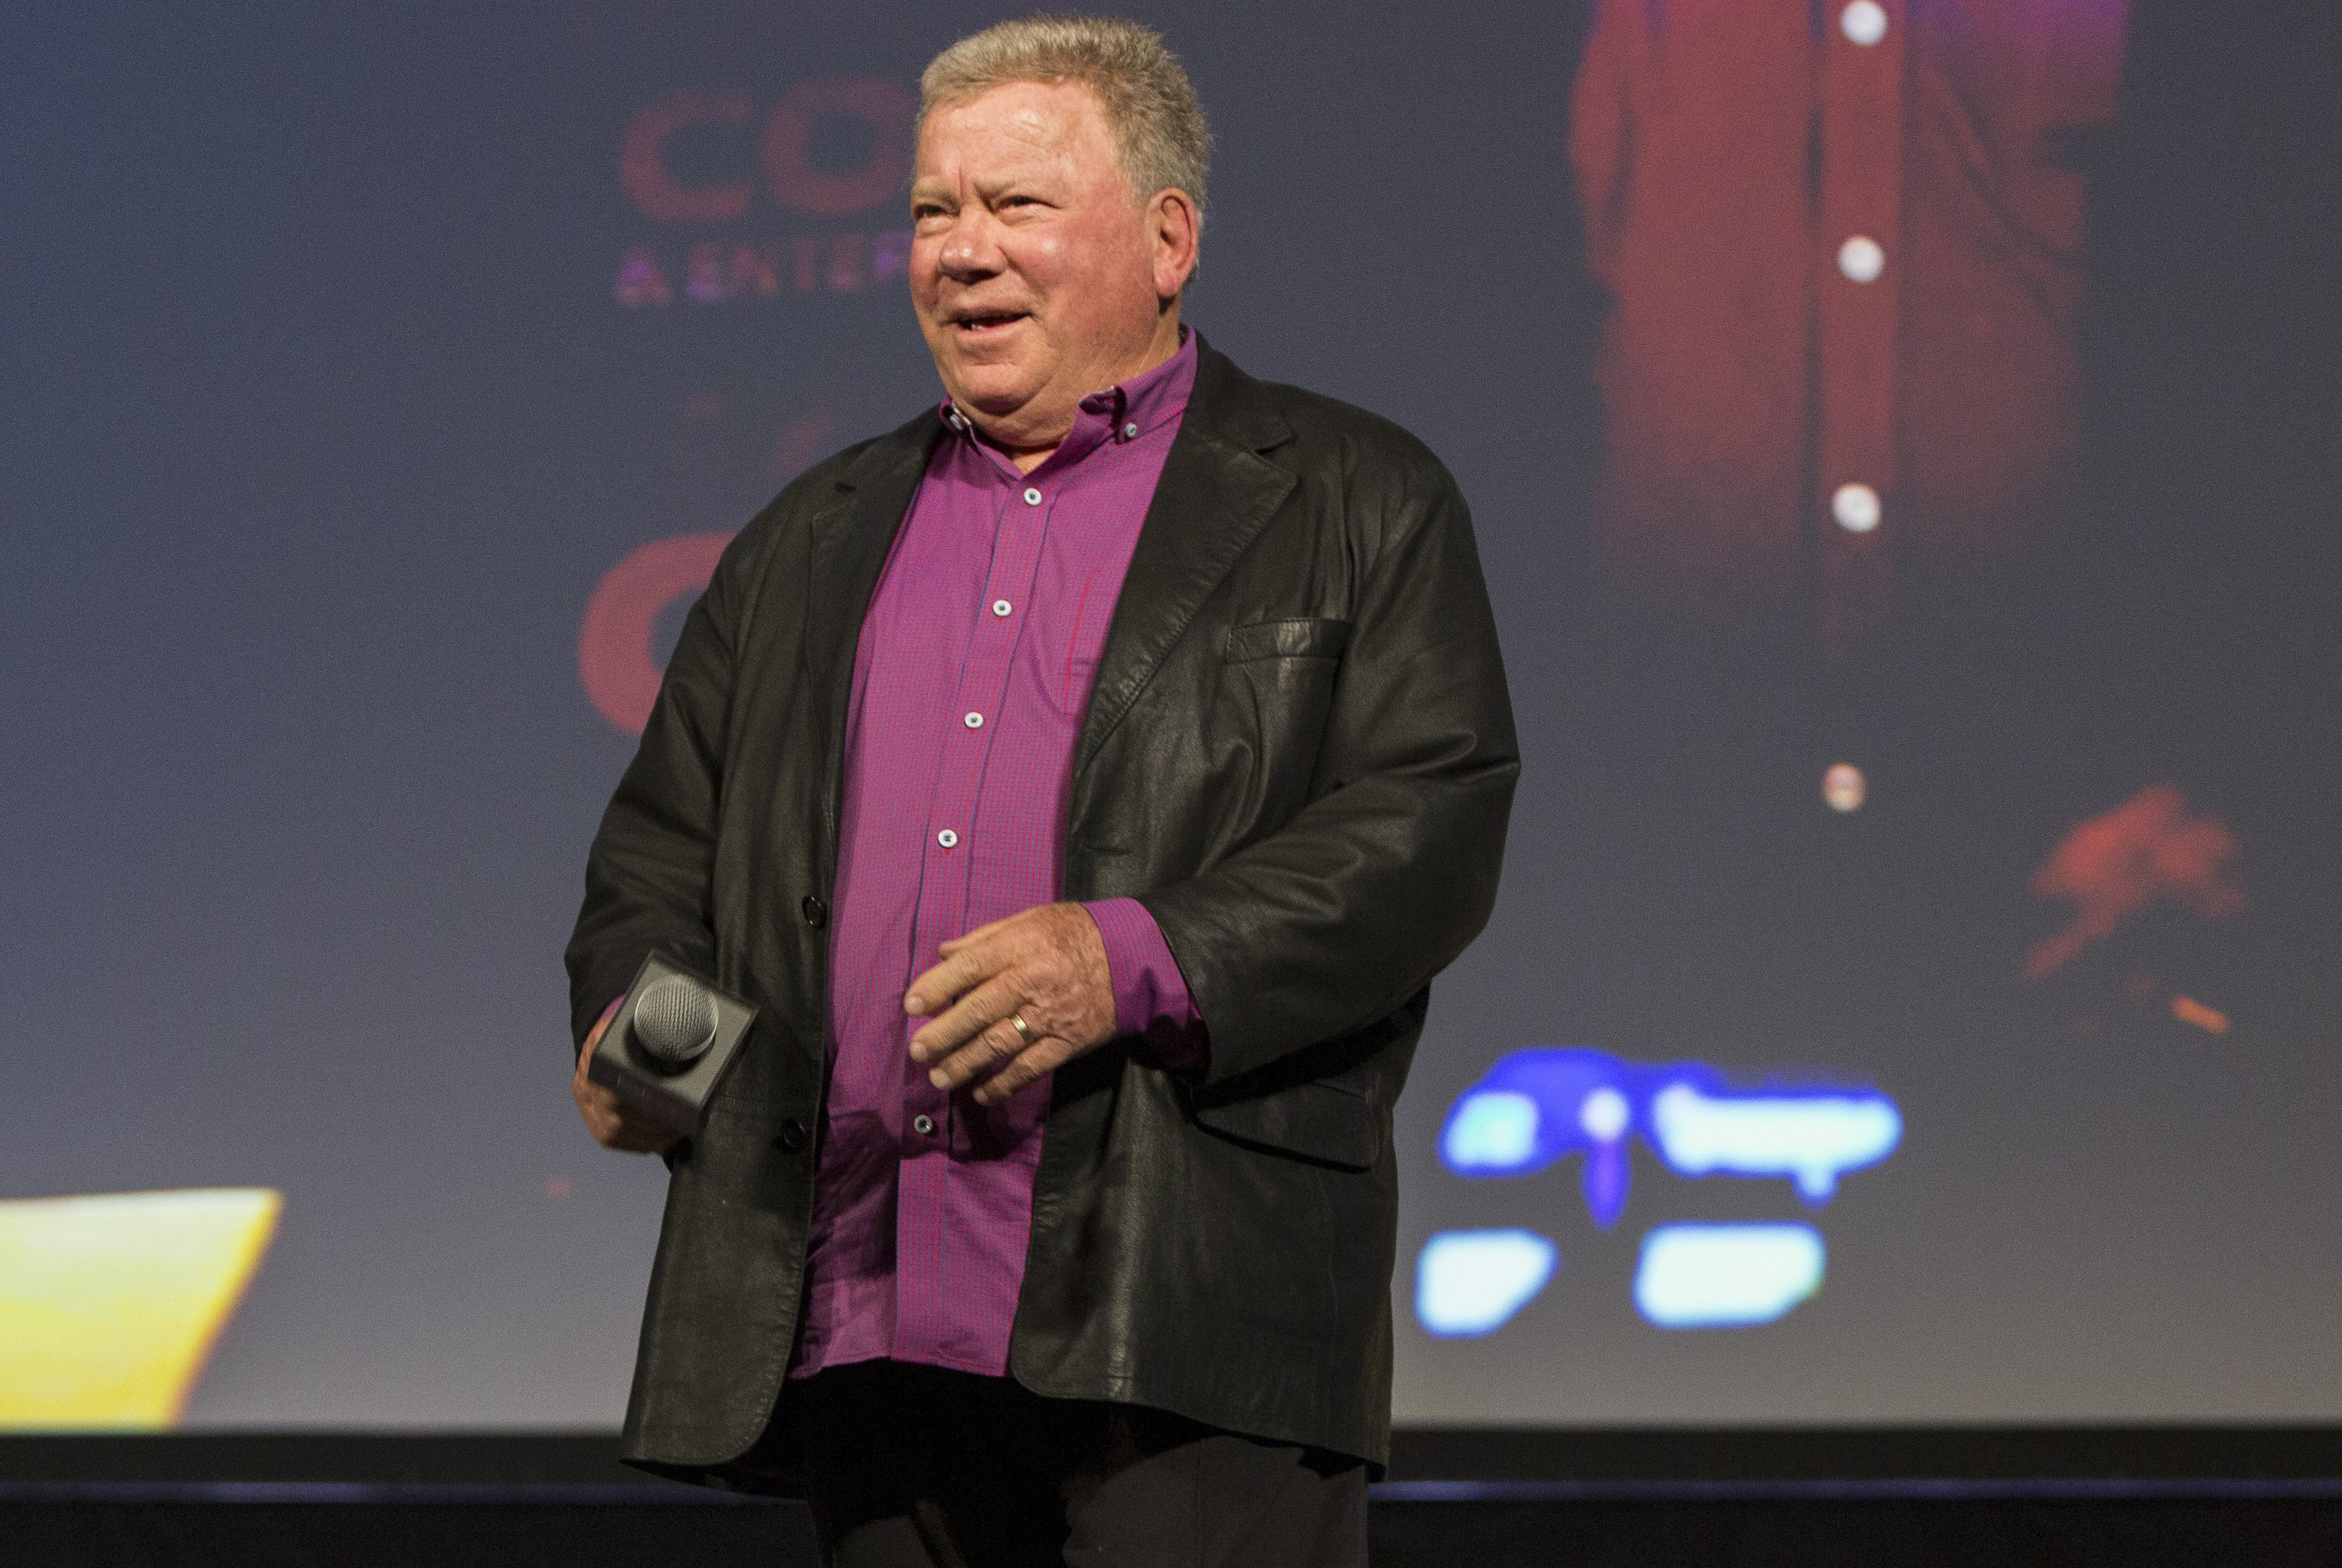 Actor William Shatner during C2E2 at McCormick Place on March 01, 2020 in Chicago, Illinois.   Source: Getty Images